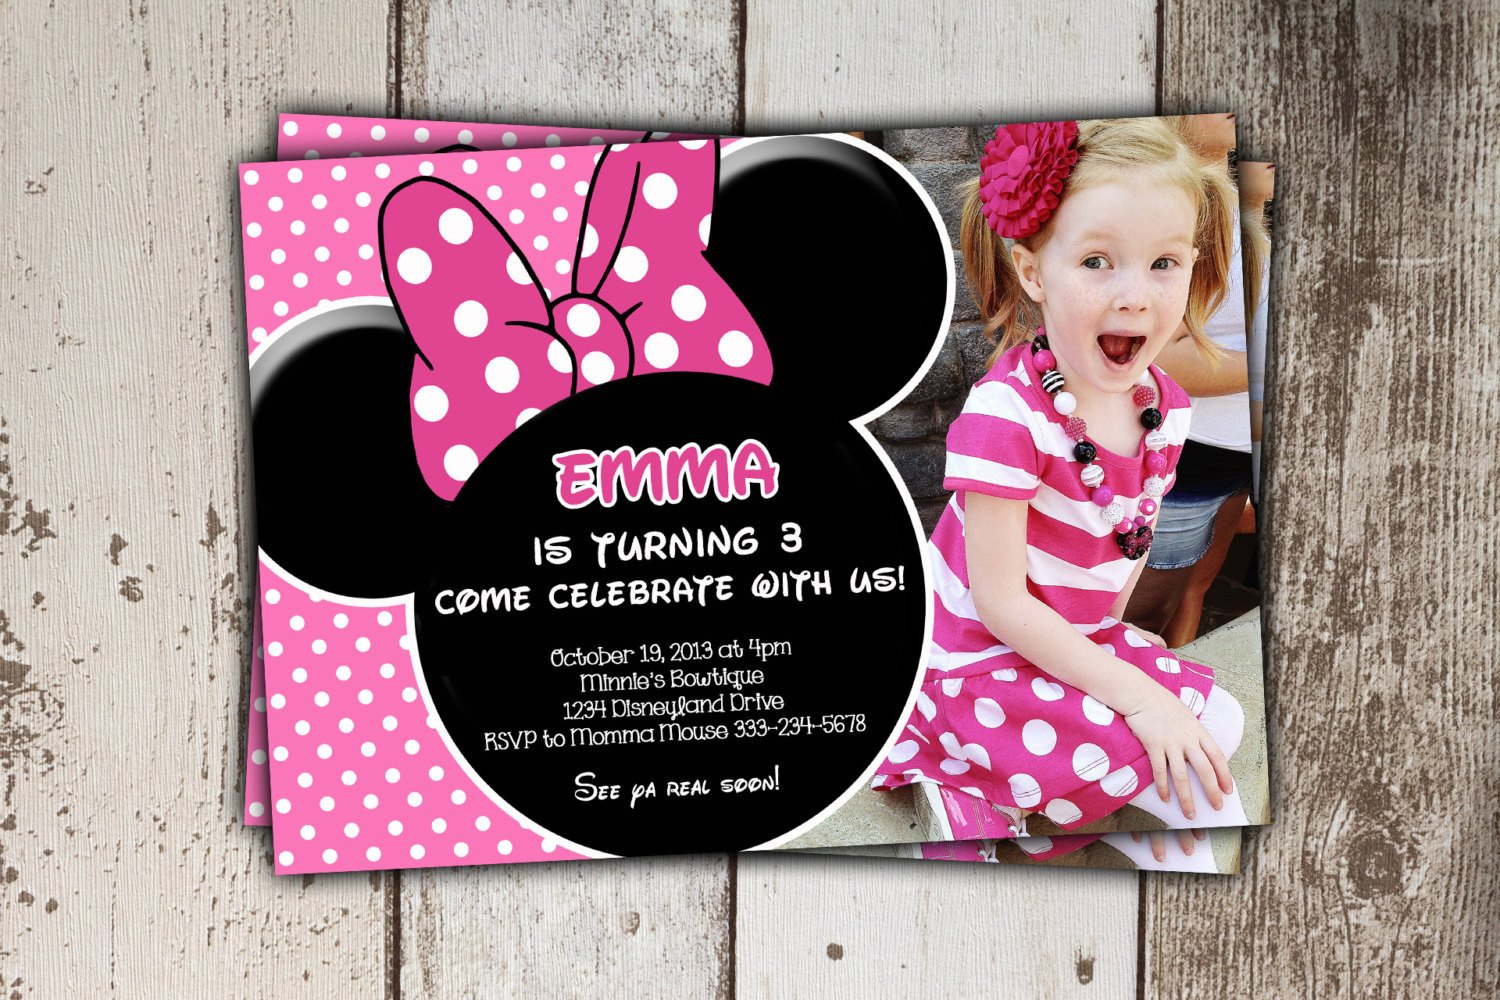 Minnie Mouse Party Invitations Minnie Mouse Invitations Pink Birthday Invitations with